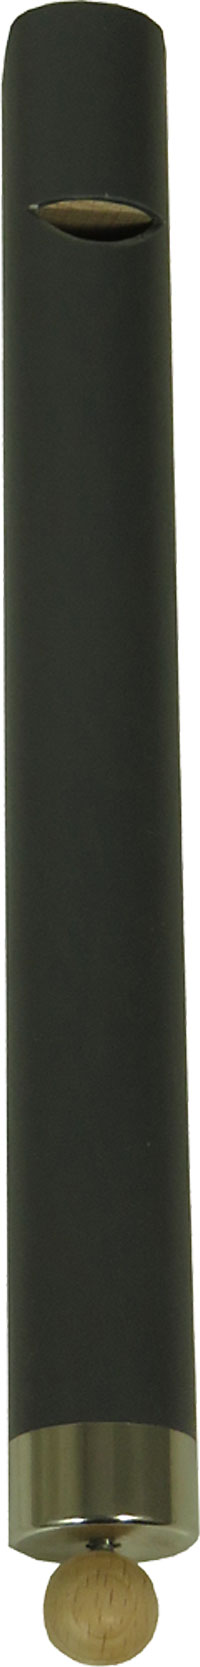 Atlas AW-F22 Plastic Swannee Whistle